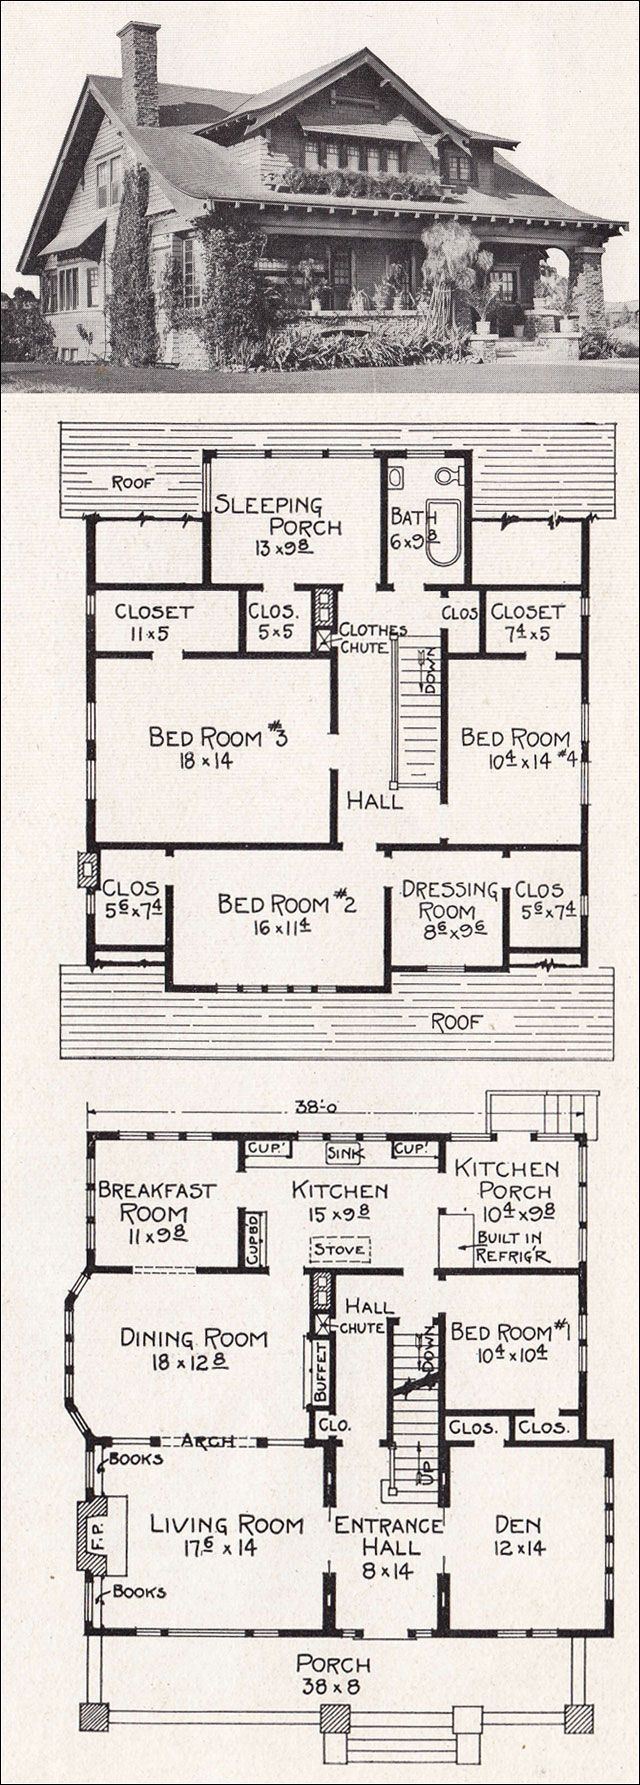 25 best bungalow house plans ideas on pinterest Bungalow open concept floor plans